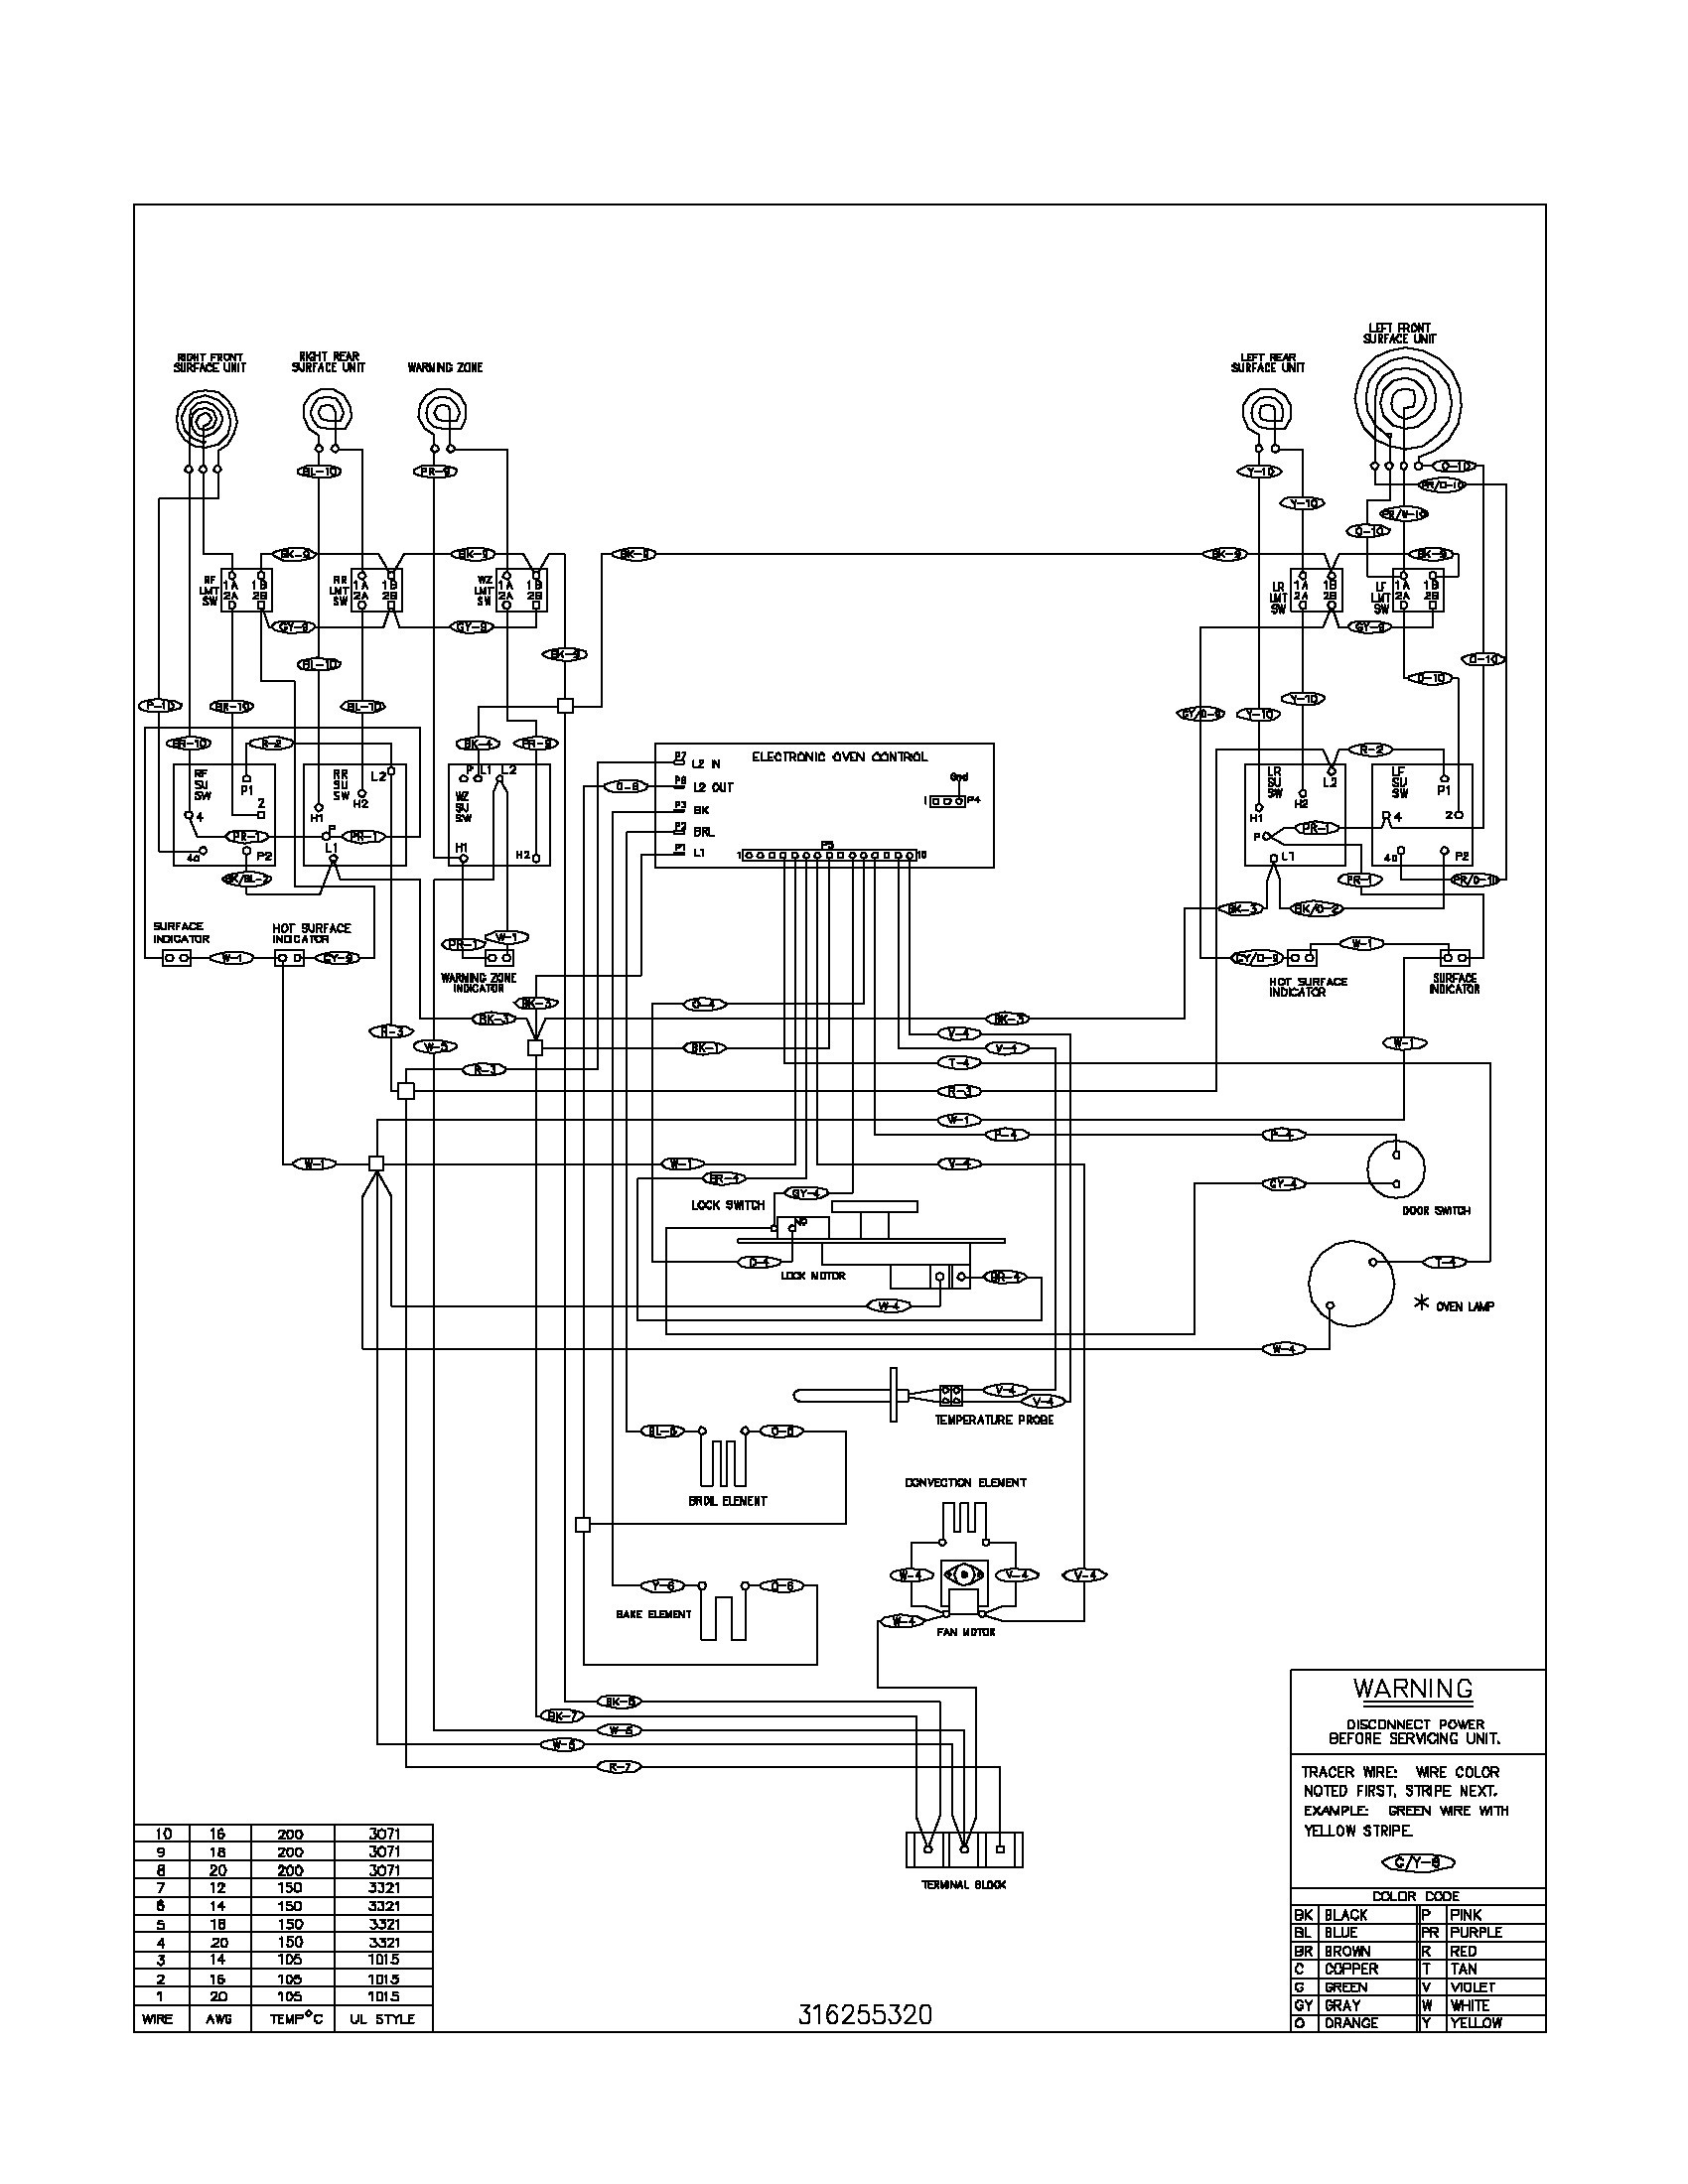 small resolution of wiring diagram for whirlpool double ovens wiring diagram load wiring diagram for whirlpool double oven wiring diagram for whirlpool oven